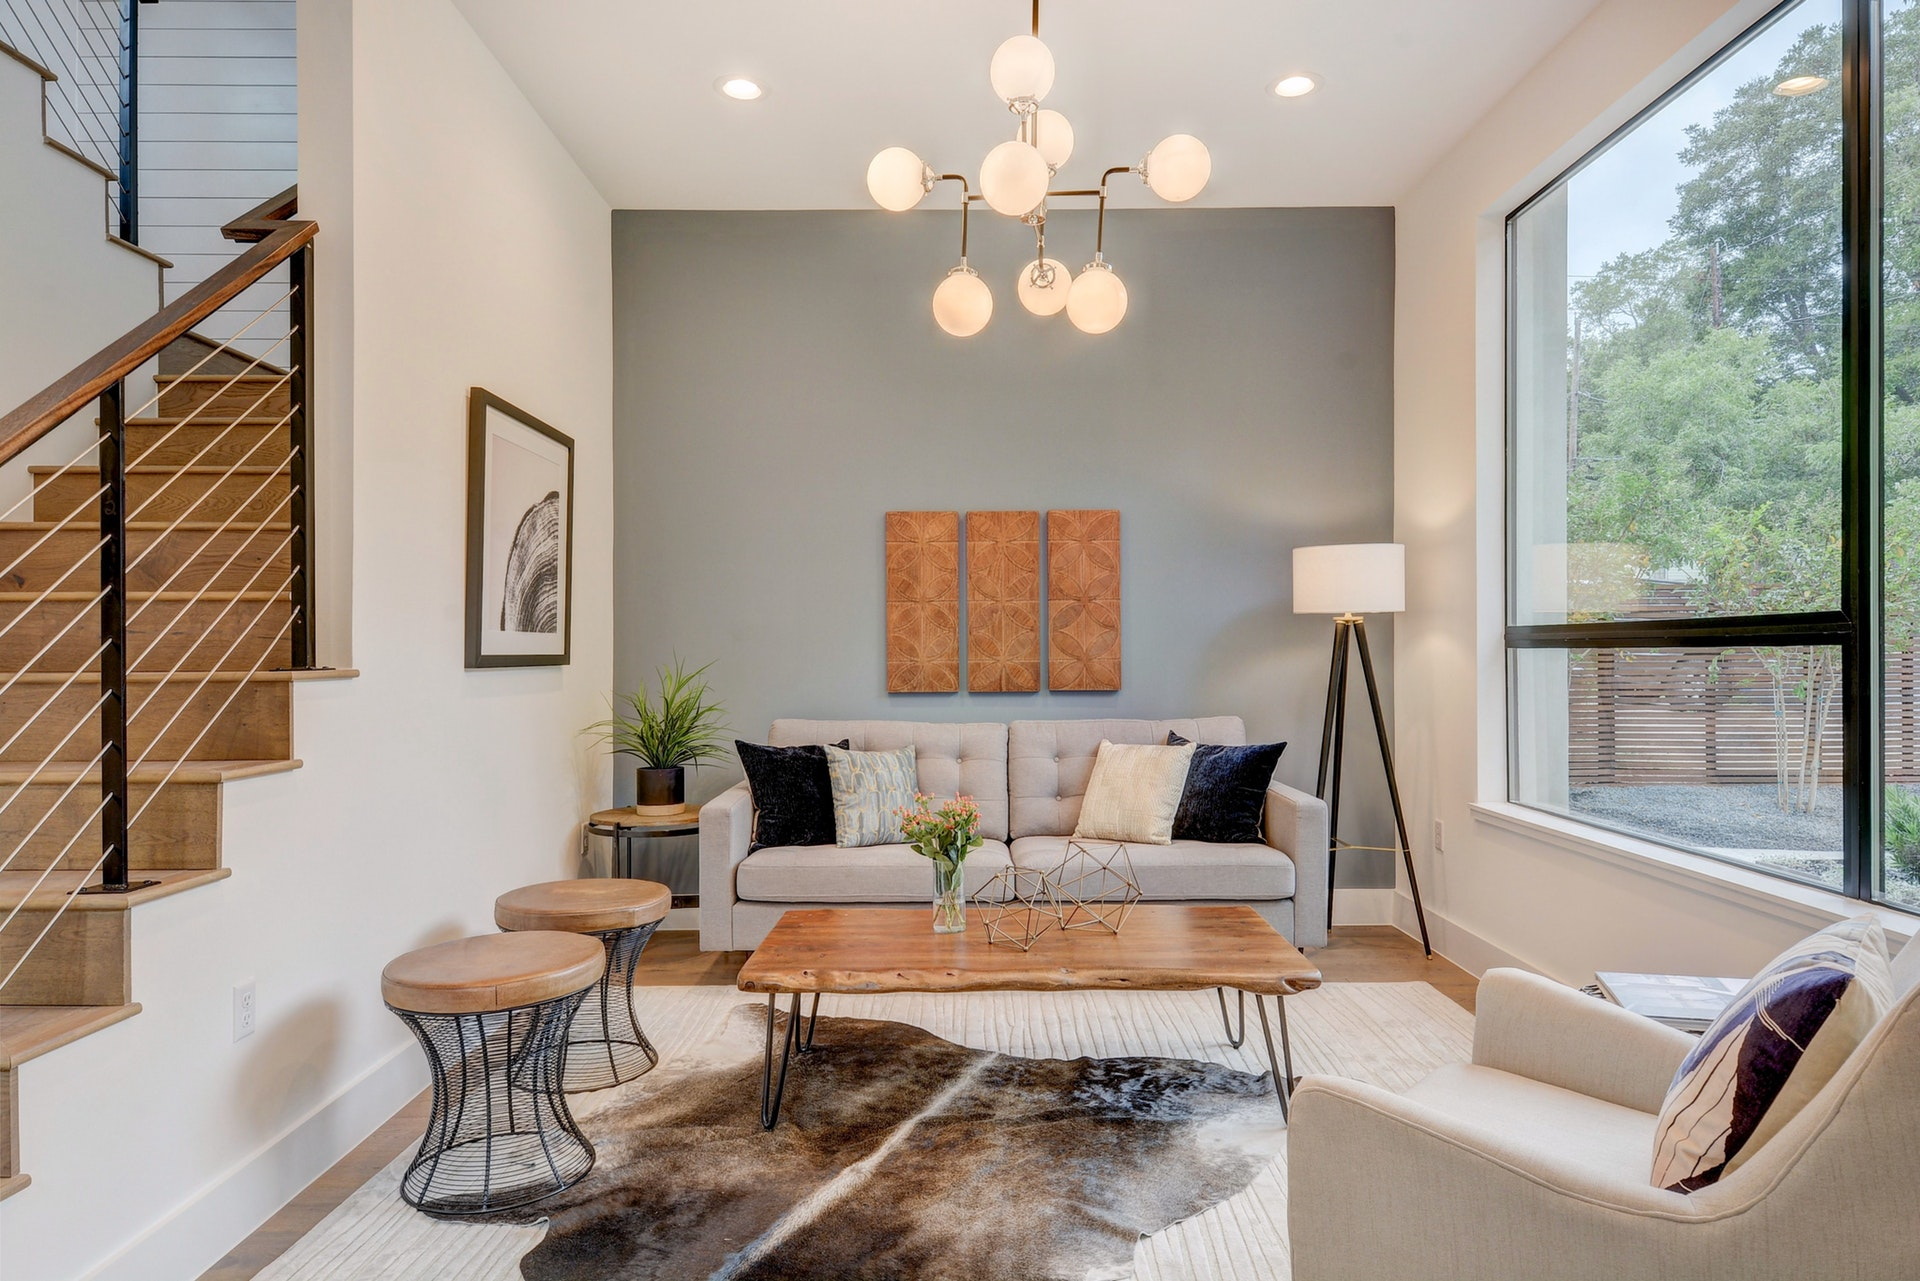 The formal living room includes an accent wall in Benjamin Moore Sea Star, black accents, cognac leather stools, a layered cowhide and mid century modern wood wall panels.